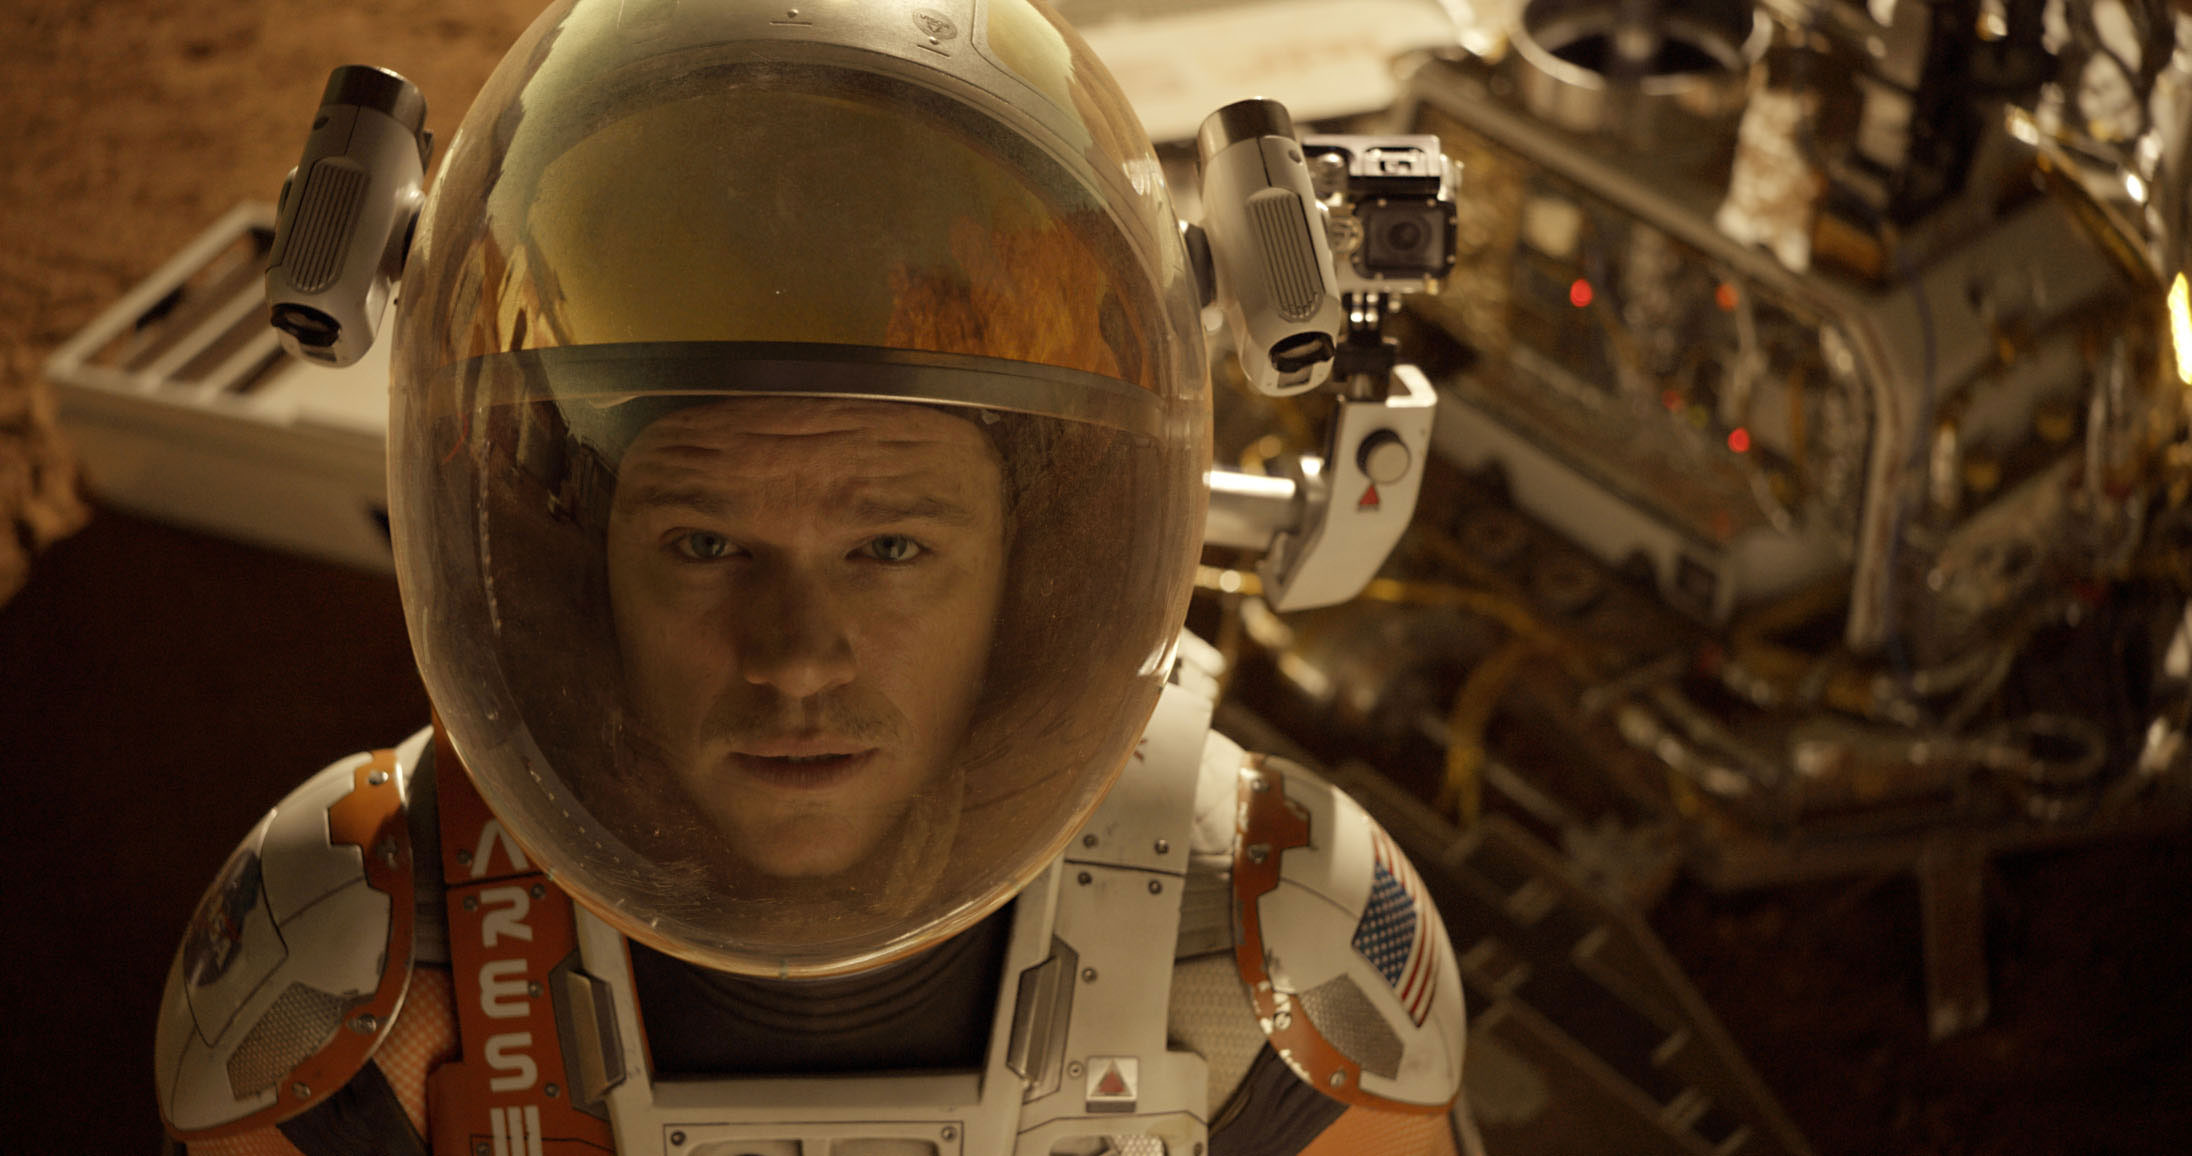 the-martian-trailer-image-matt-damon.jpg